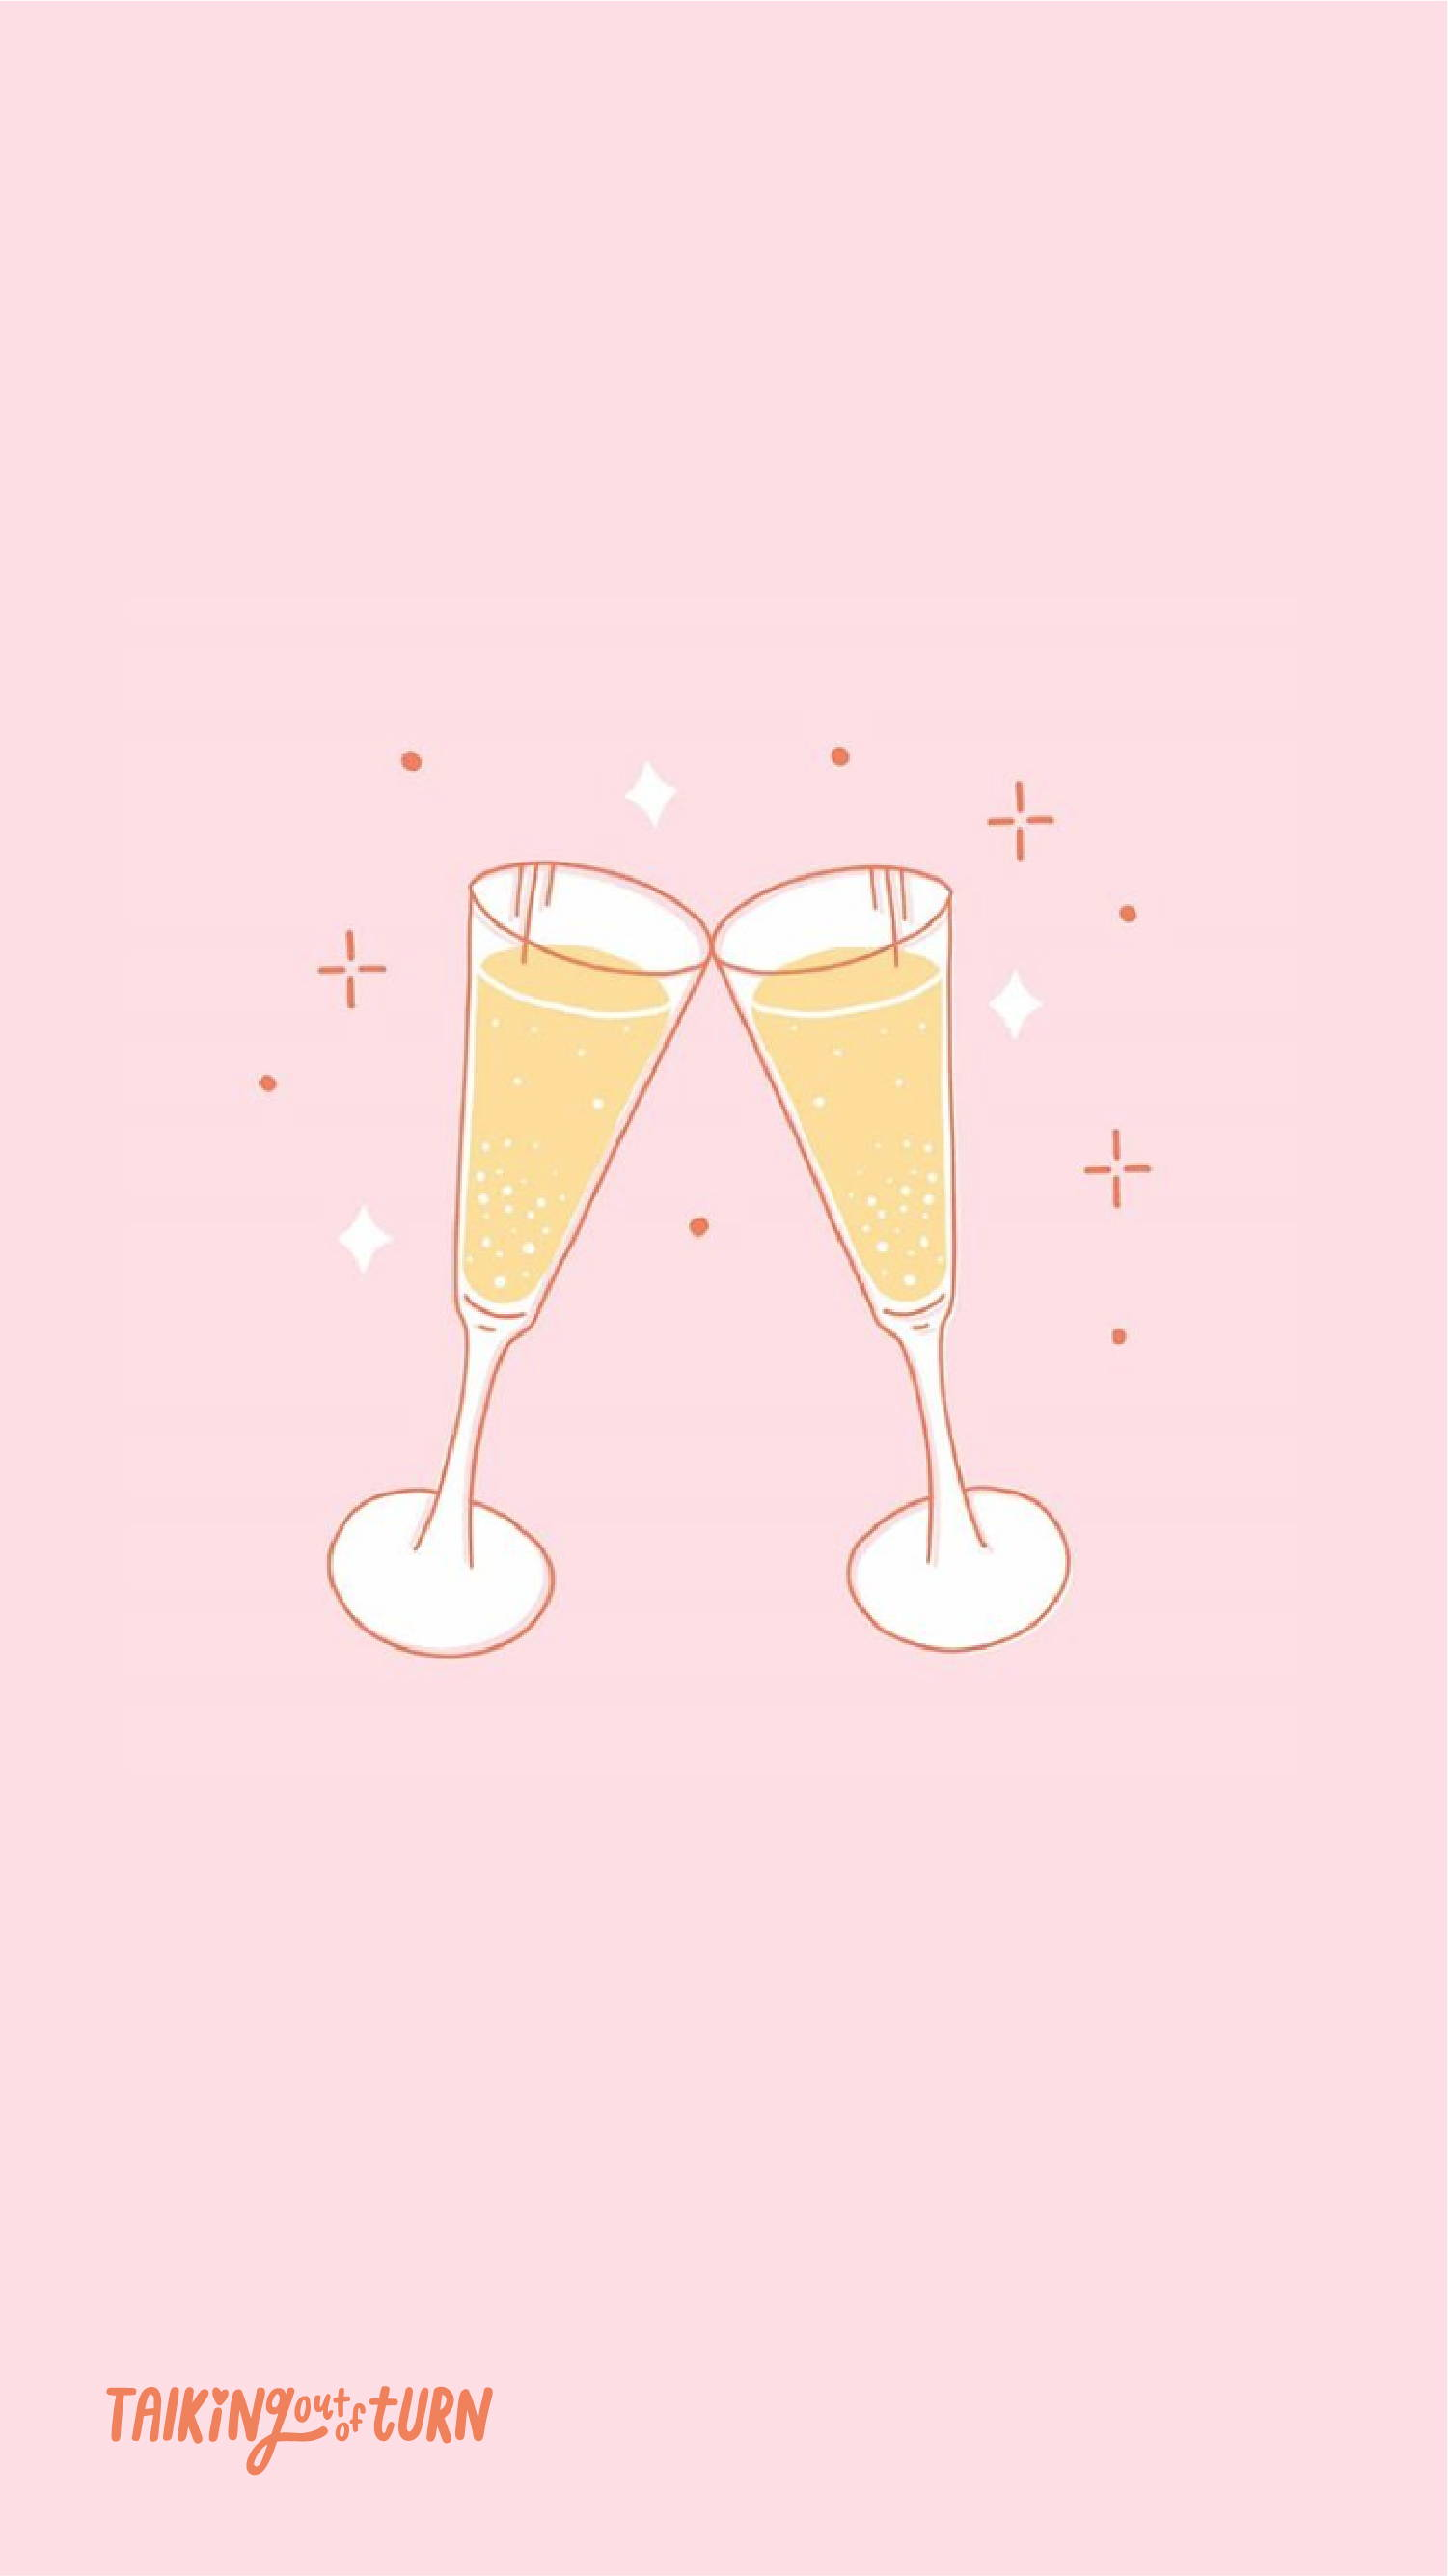 Free phone wallpaper of two champagne flutes cheers.